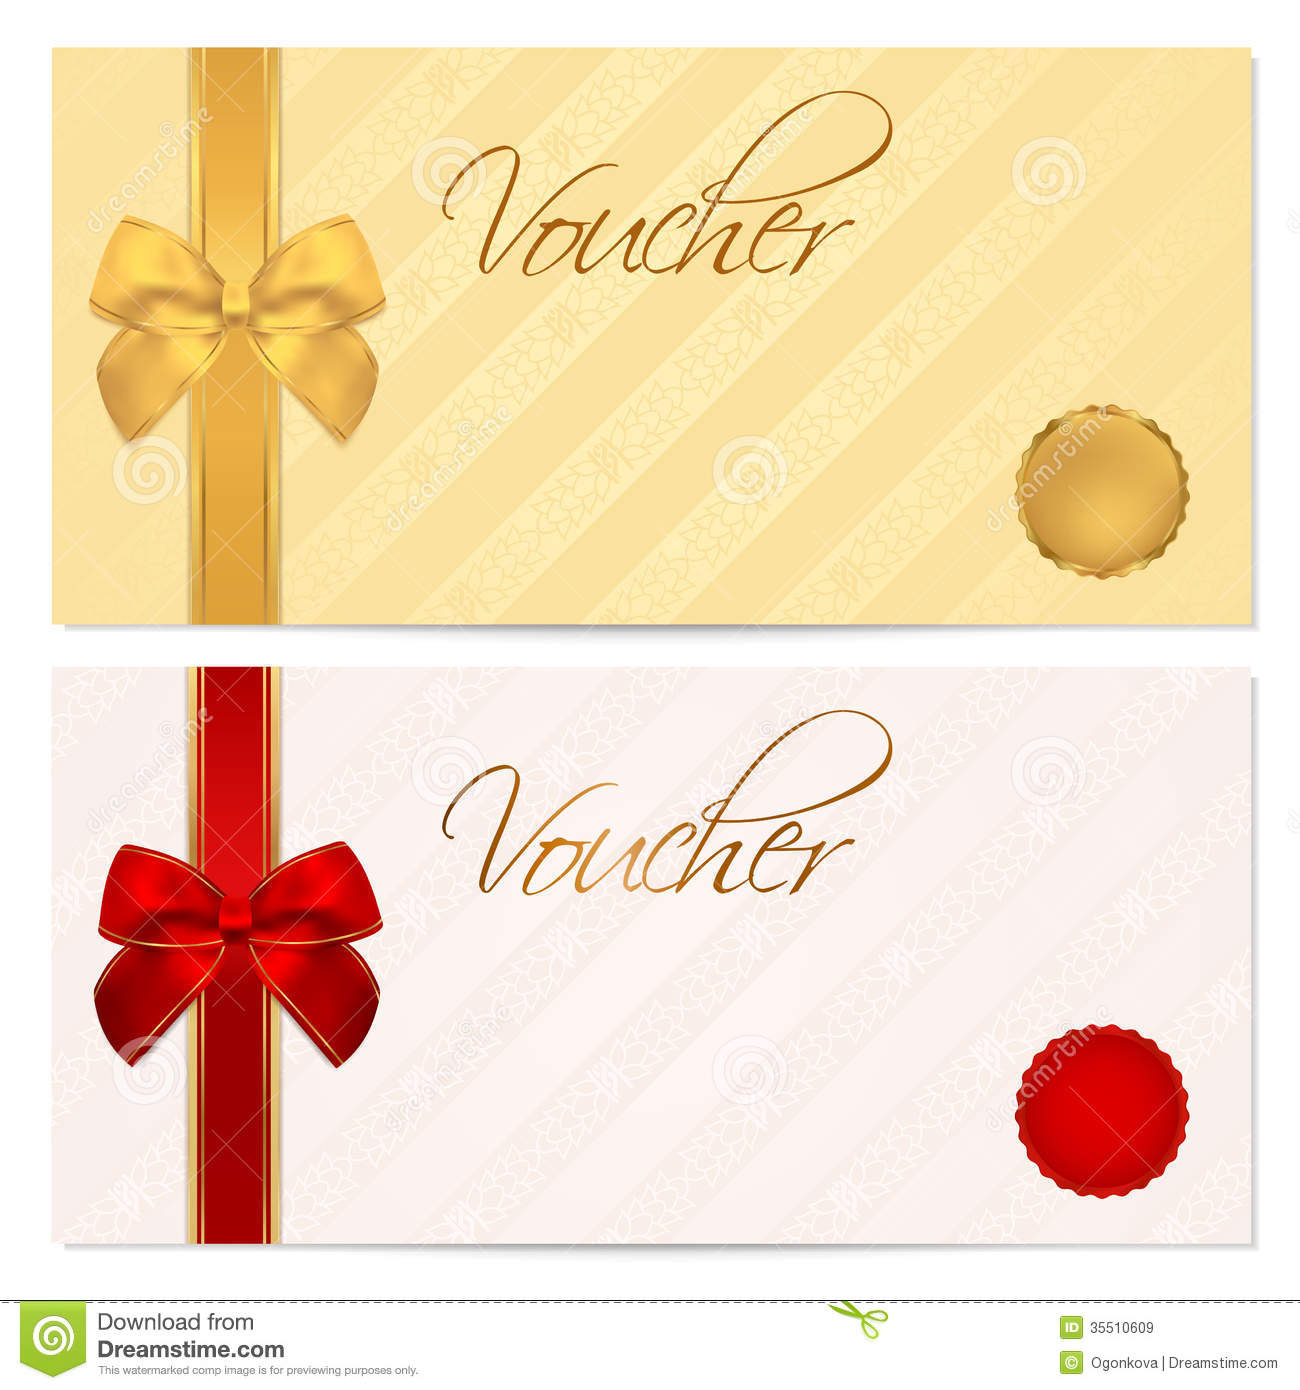 design a voucher template wordpress theme and templates christmas t voucher template images about